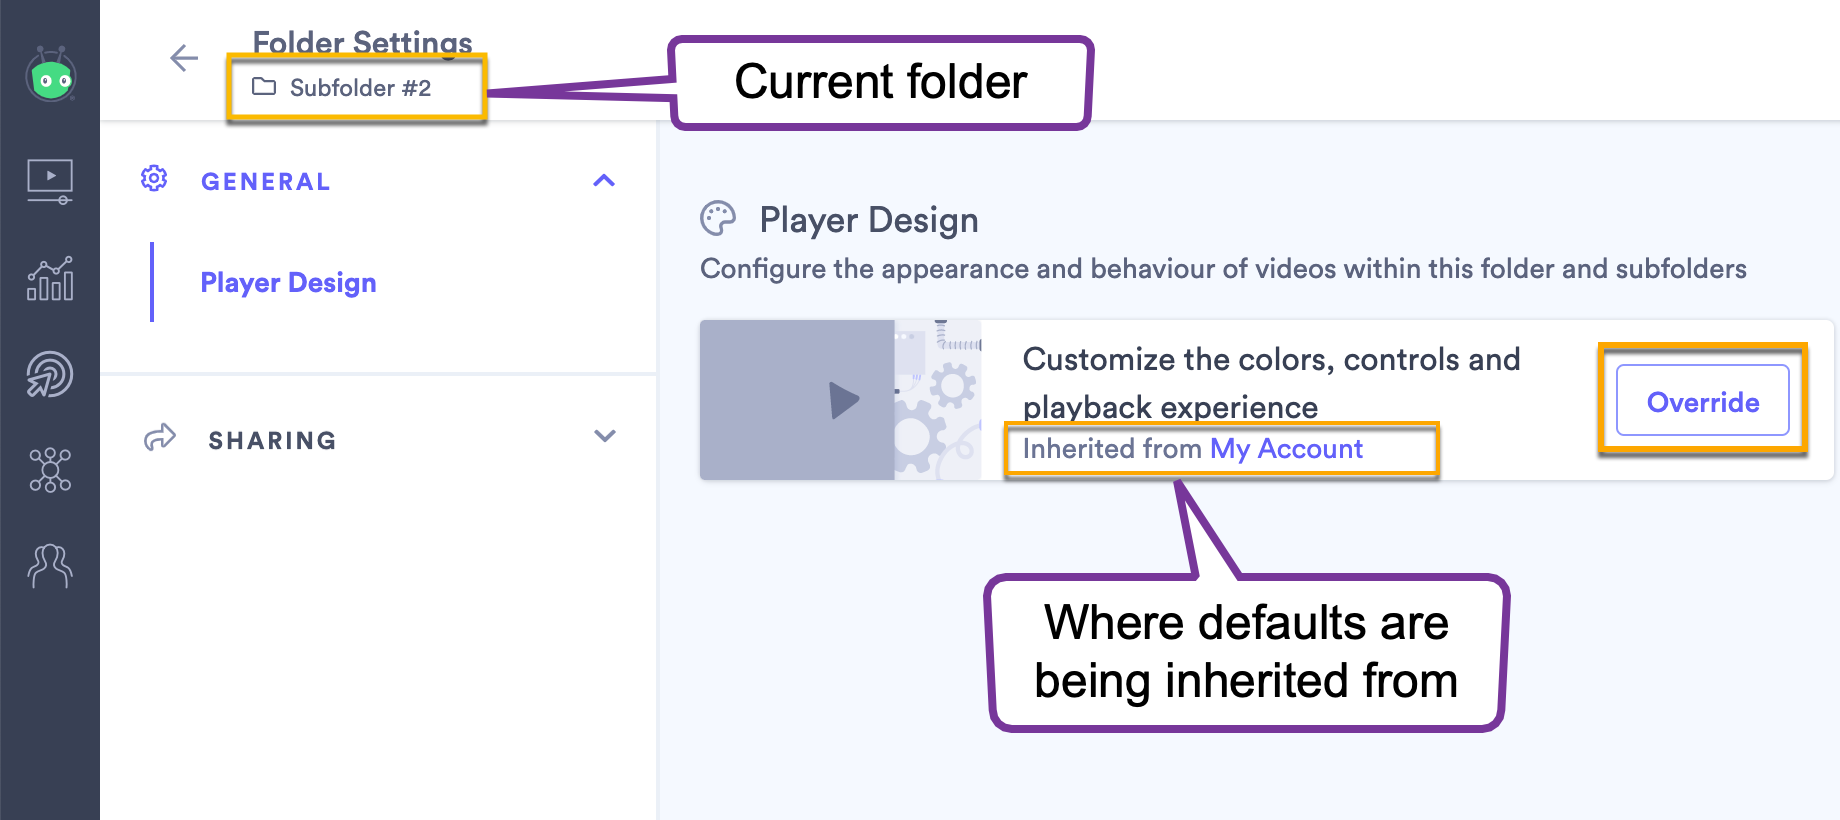 The folder settings page indicating that video design defaults are being inherited from another folder